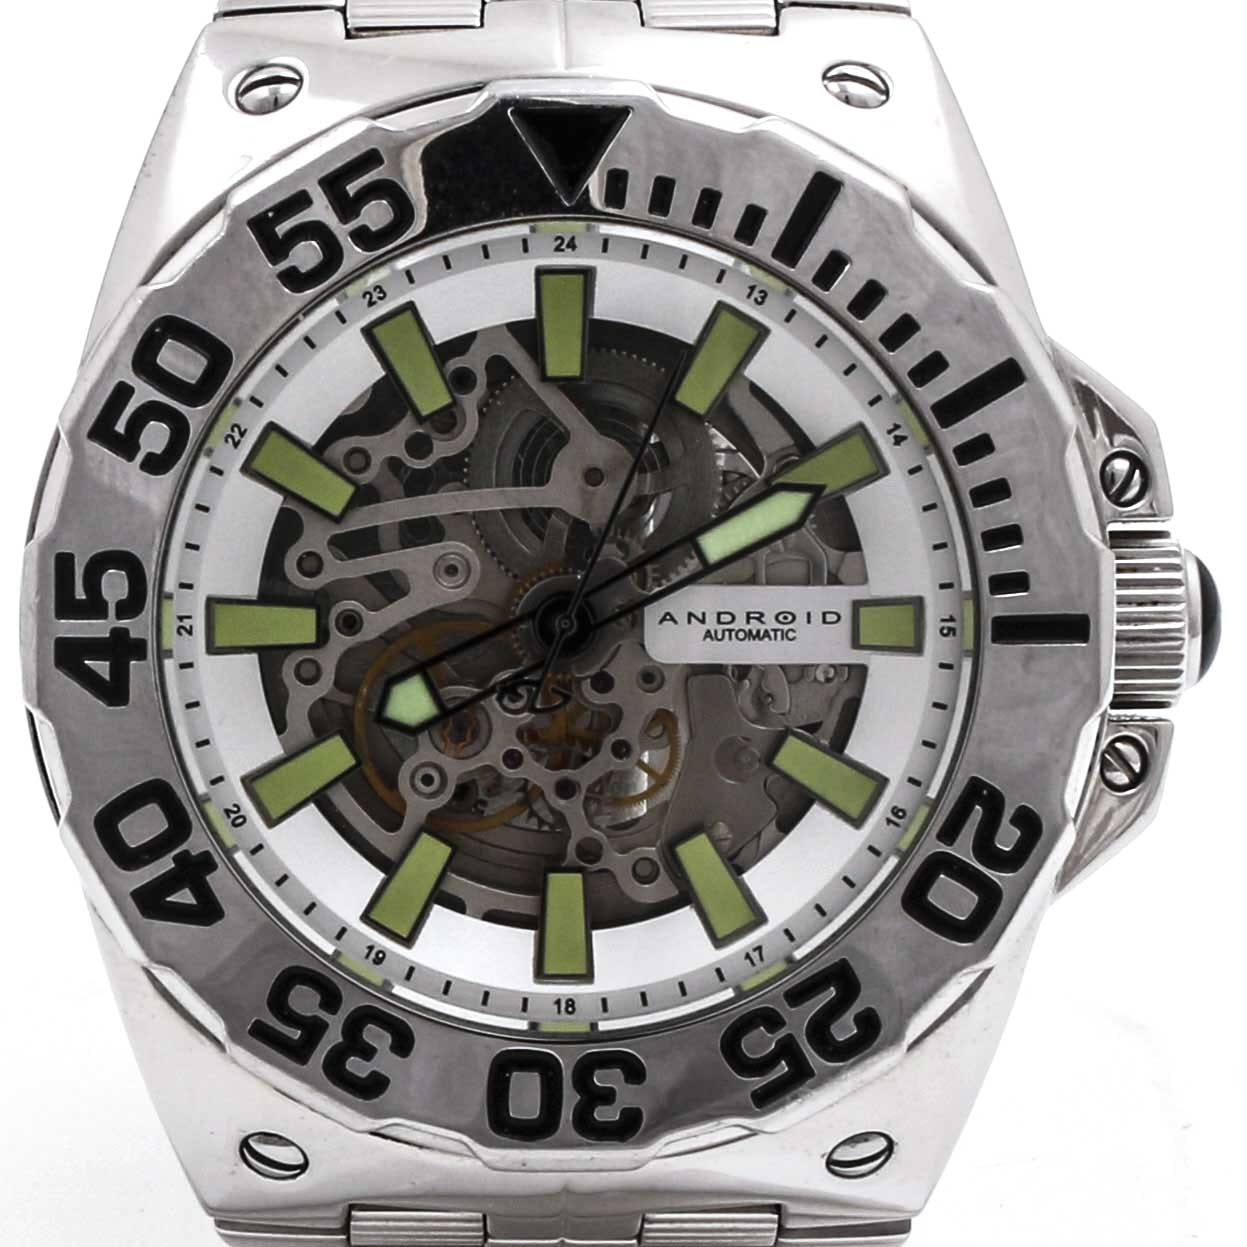 Android Automatic Men's Wristwatch